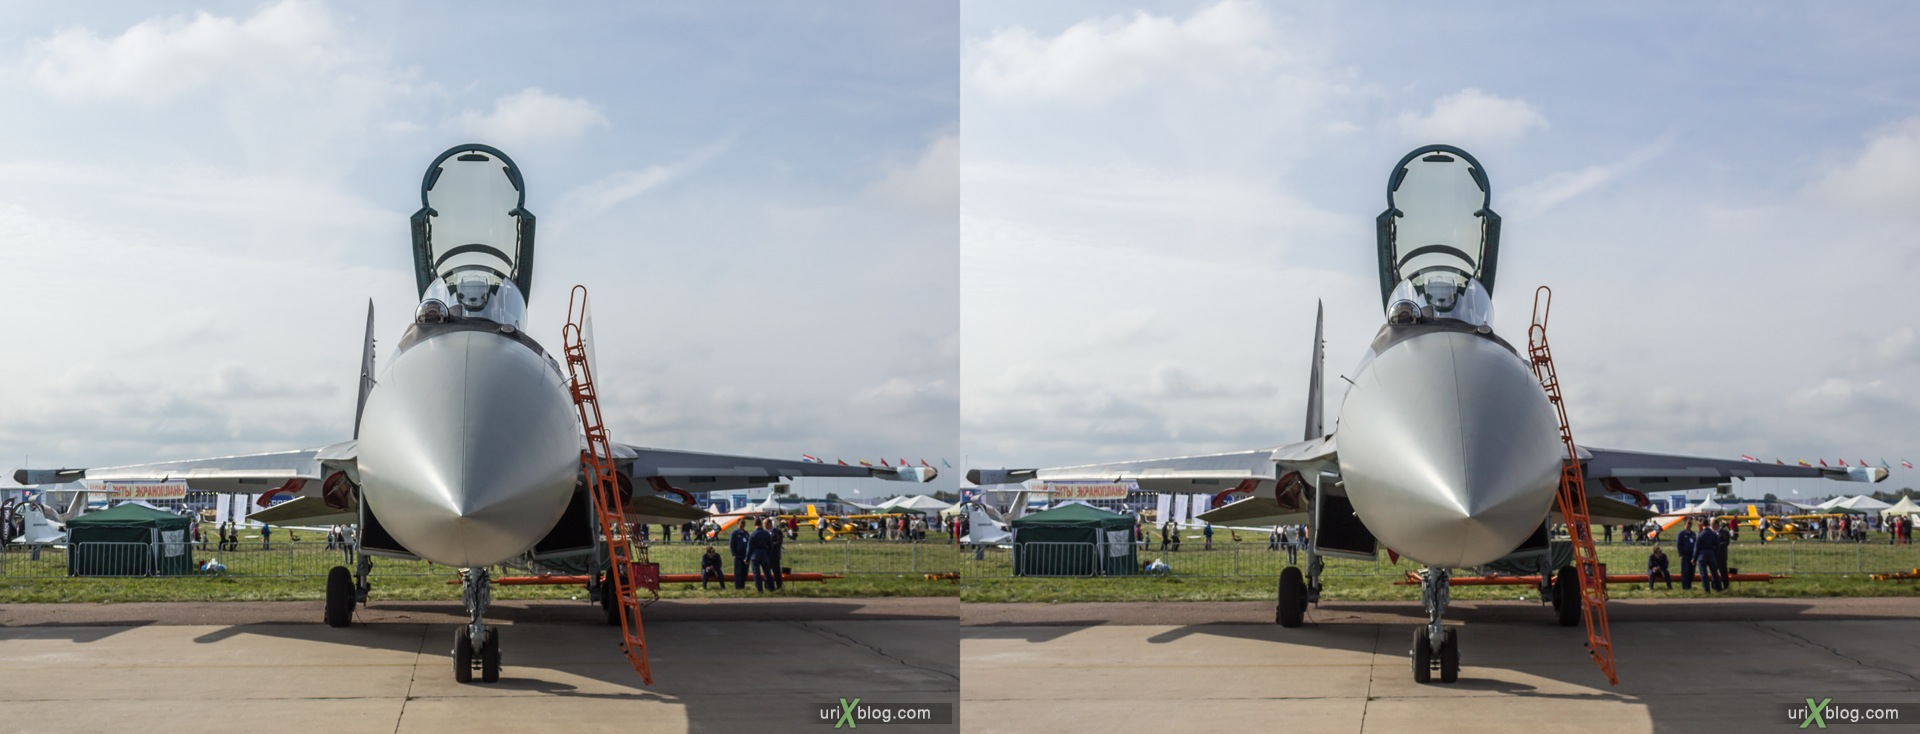 2013, Su-35S, MAKS, International Aviation and Space Salon, Russia, Soviet, USSR, Ramenskoye airfield, airplane, 3D, stereo pair, cross-eyed, crossview, cross view stereo pair, stereoscopic